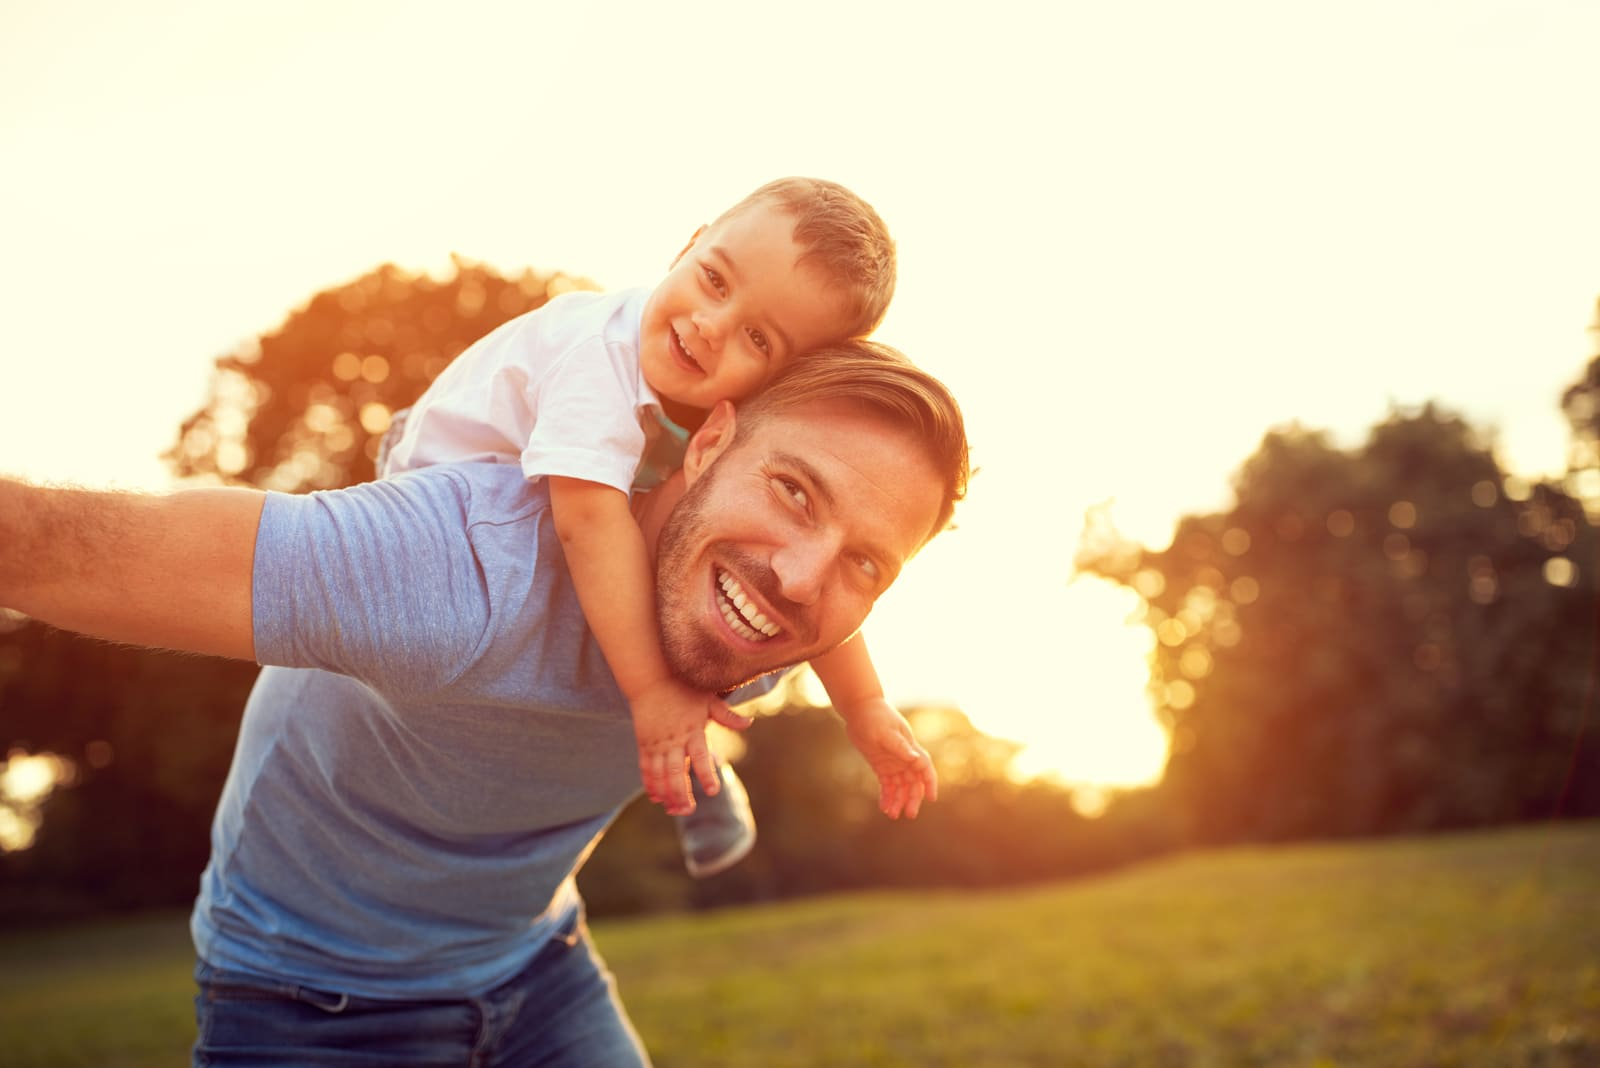 father and son having fun at sunset in nature